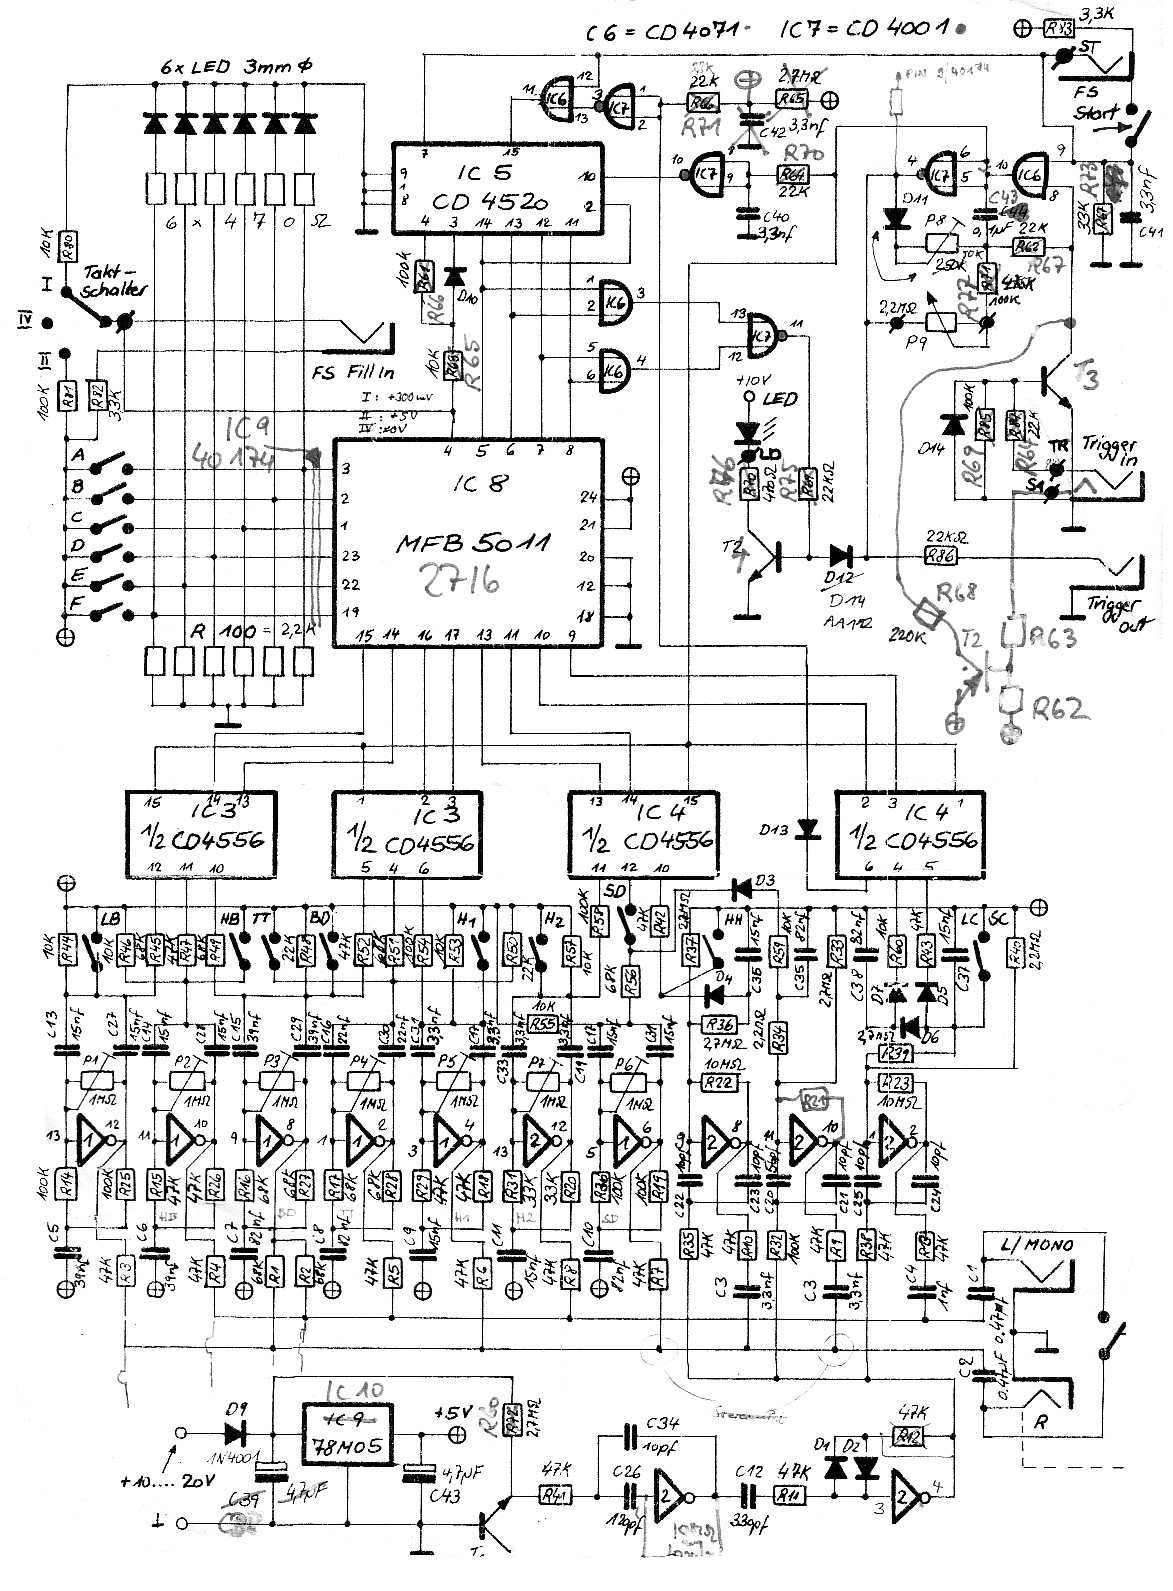 MFB 501_SCHEMATICS synthesizer service manuals free download ra-4000 installation manual at suagrazia.org